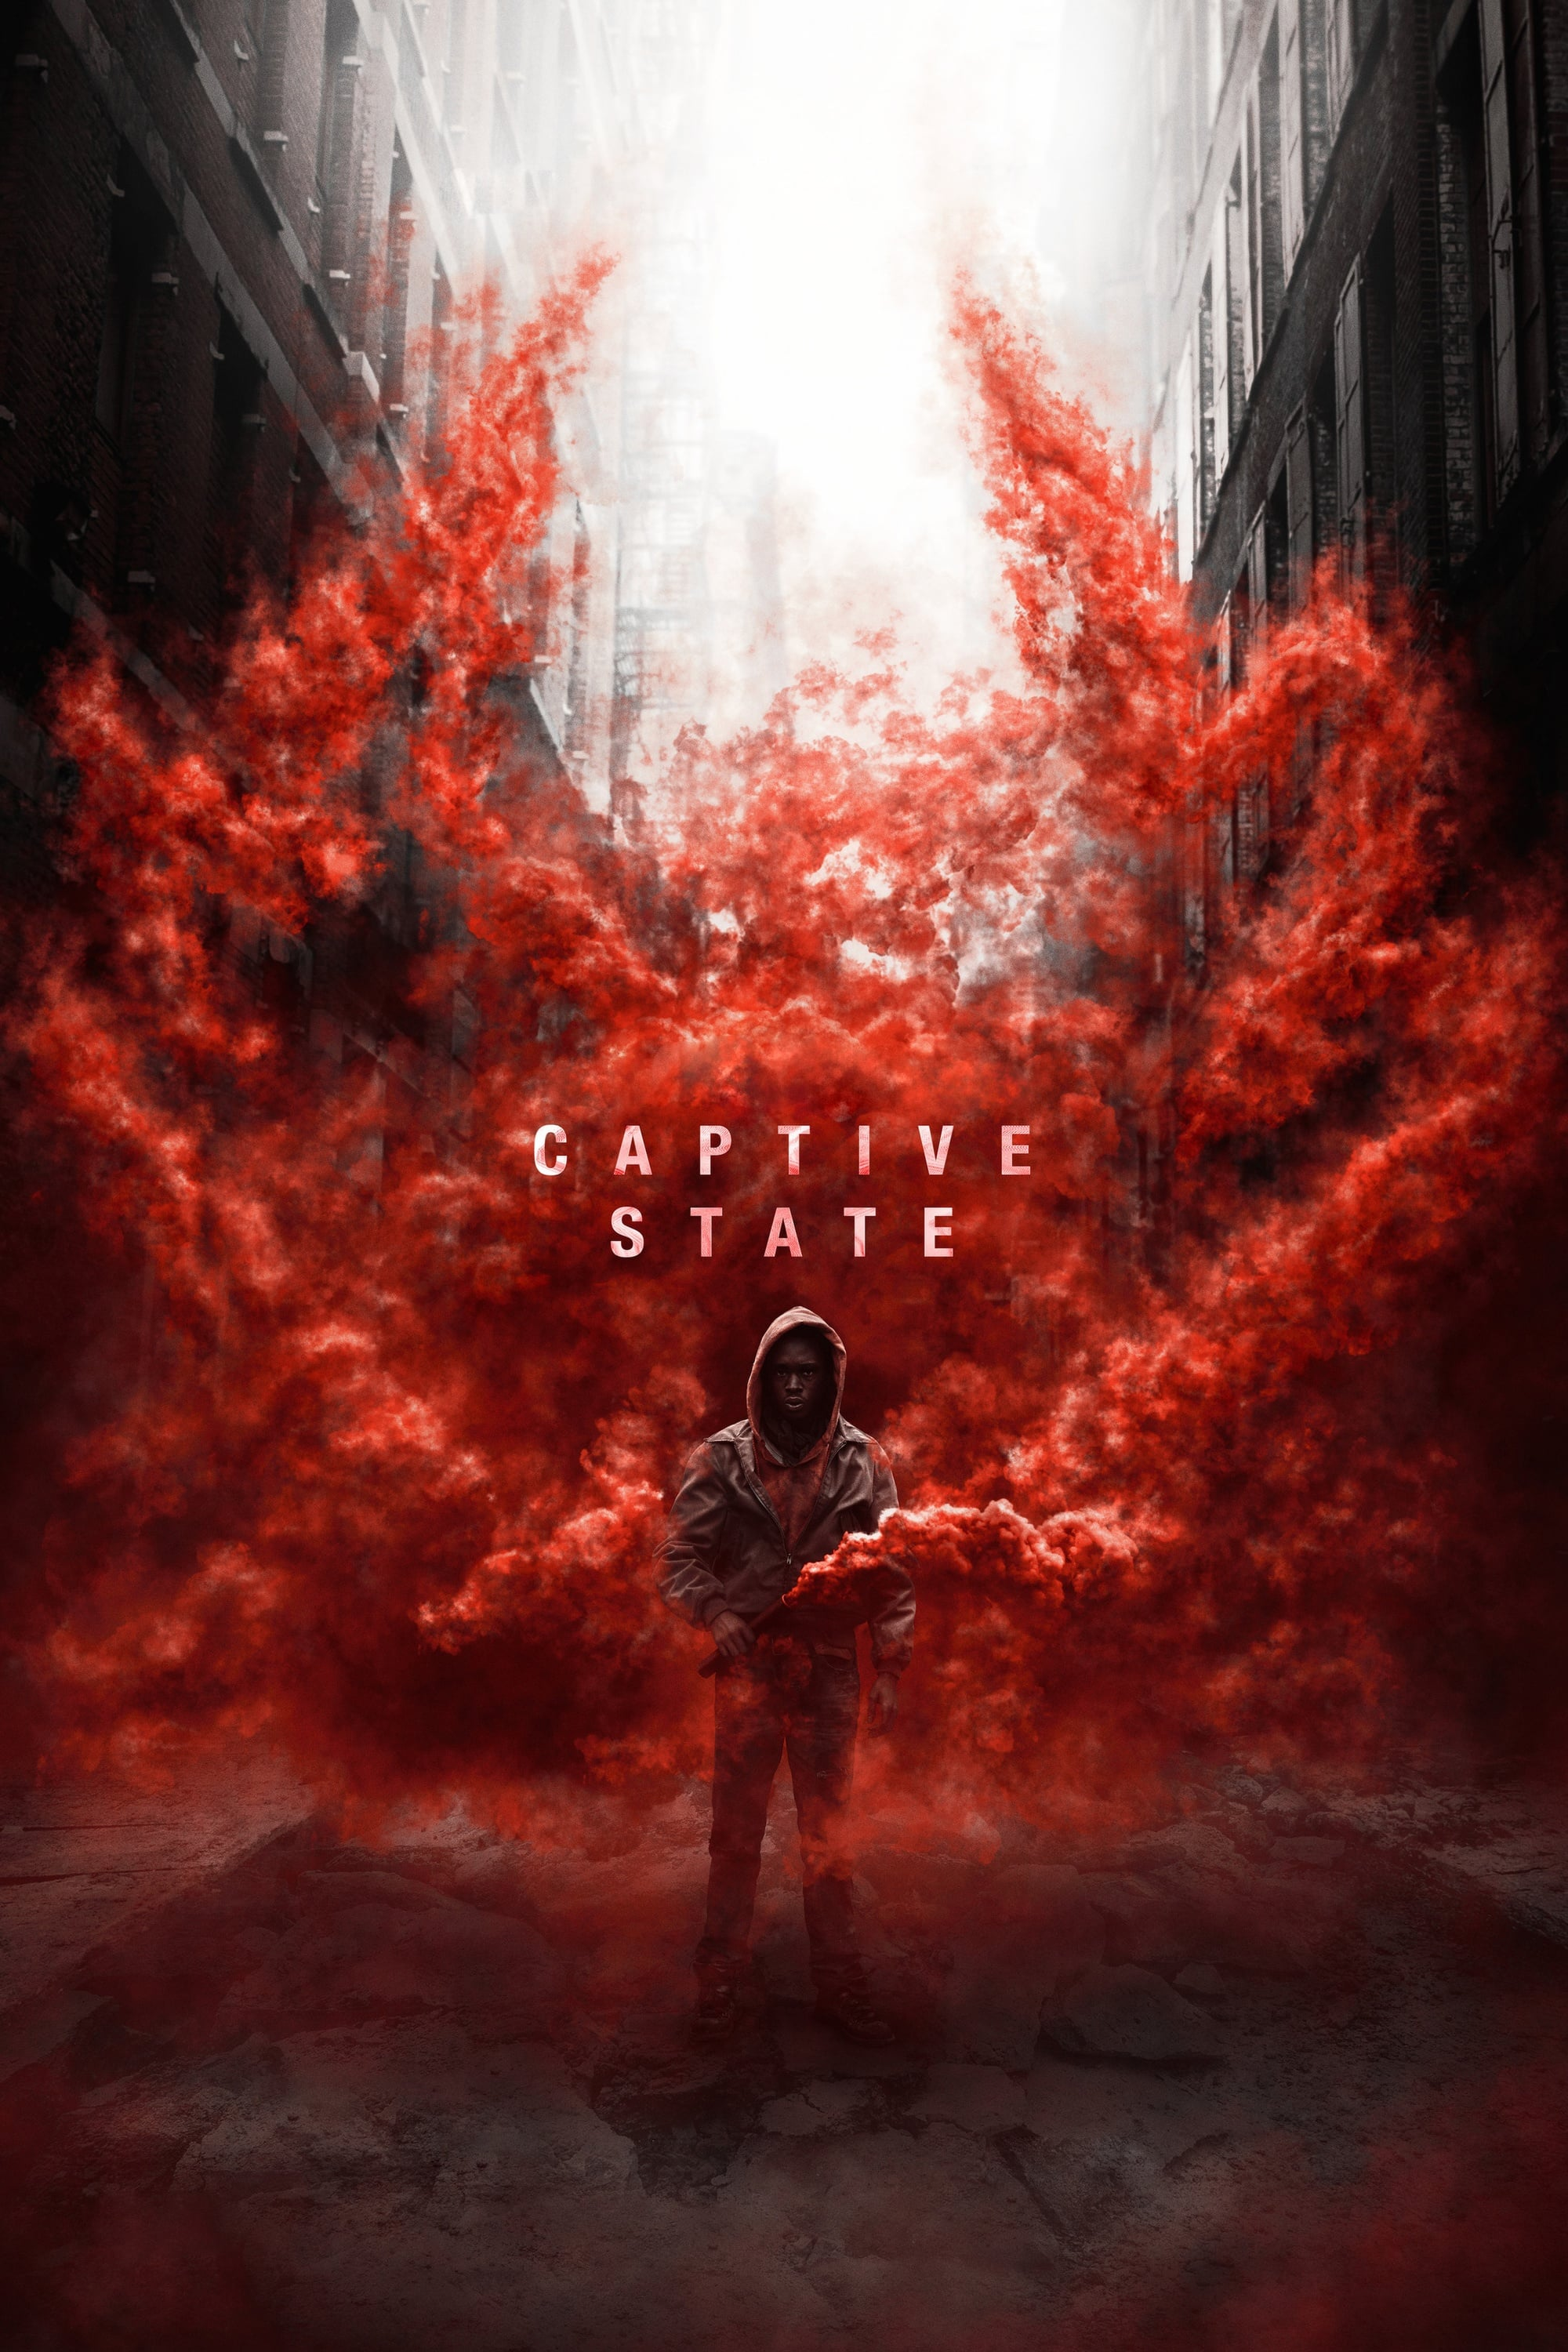 Poster and image movie Film Captive State - Captive State 2019